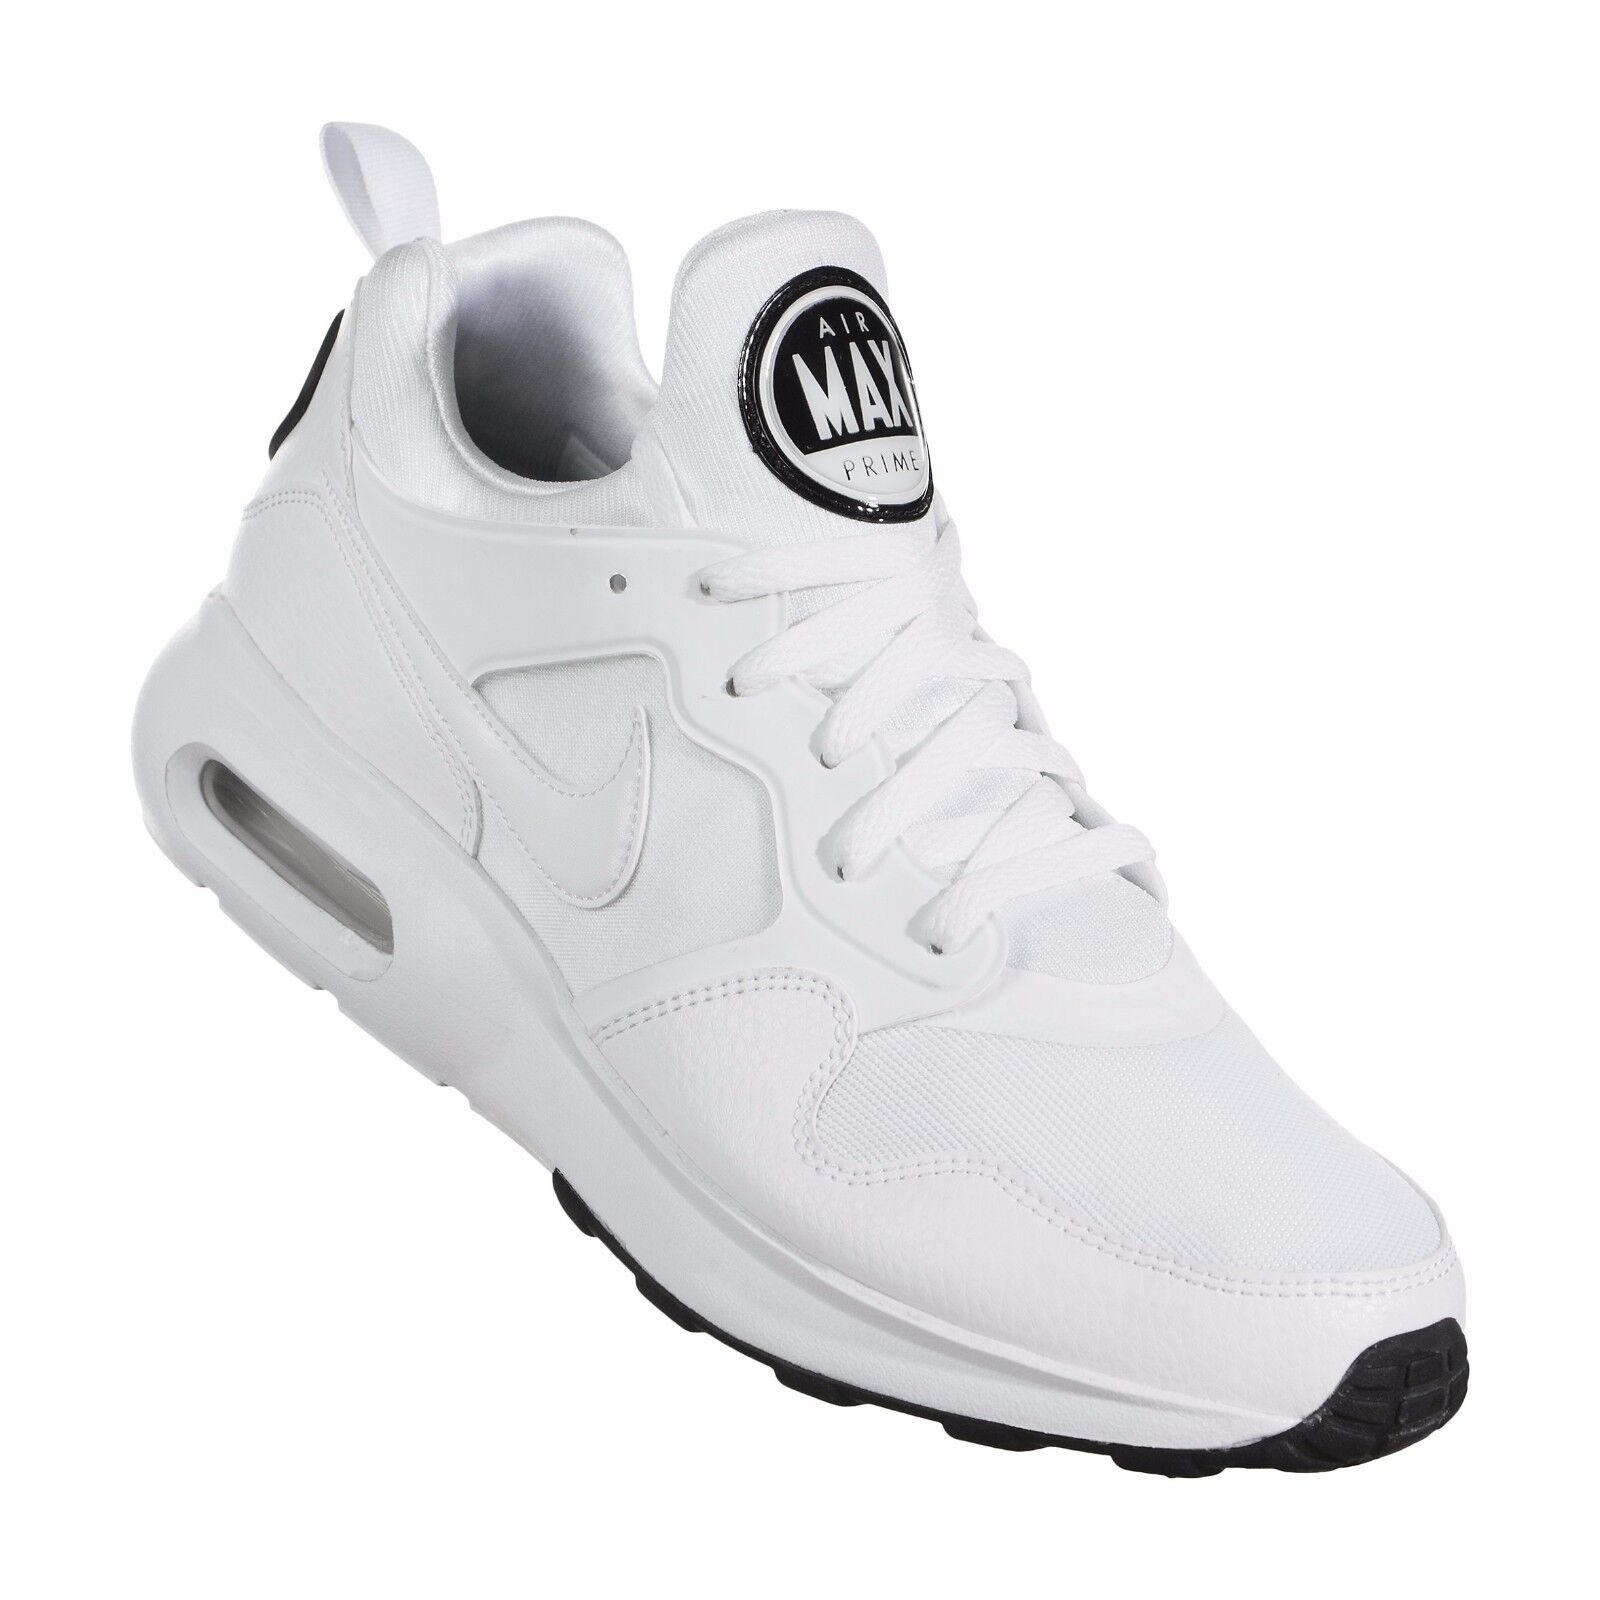 Wild casual shoes Men's Nike Air Max Prime White/Platinum/Black Comfortable